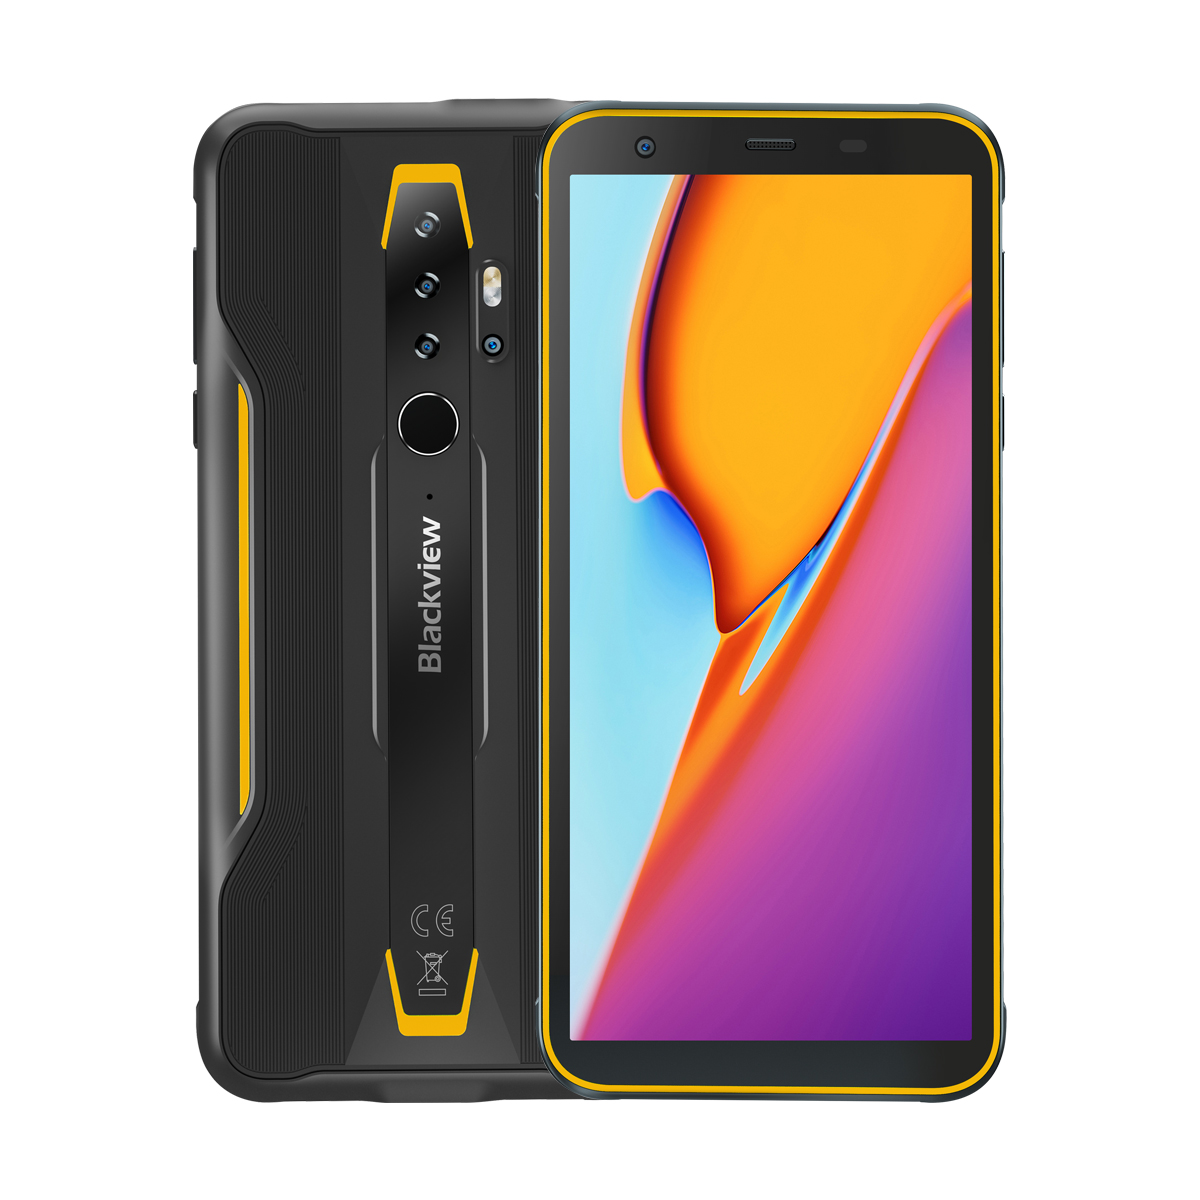 Blackview BV6300 Pro Global Bands IP68/IP69K Waterproof 5.7 inch NFC 4380mAh Android 10 16MP Quad Camera 6GB 128GB Helio P70 Octa Core 4G Smartphone